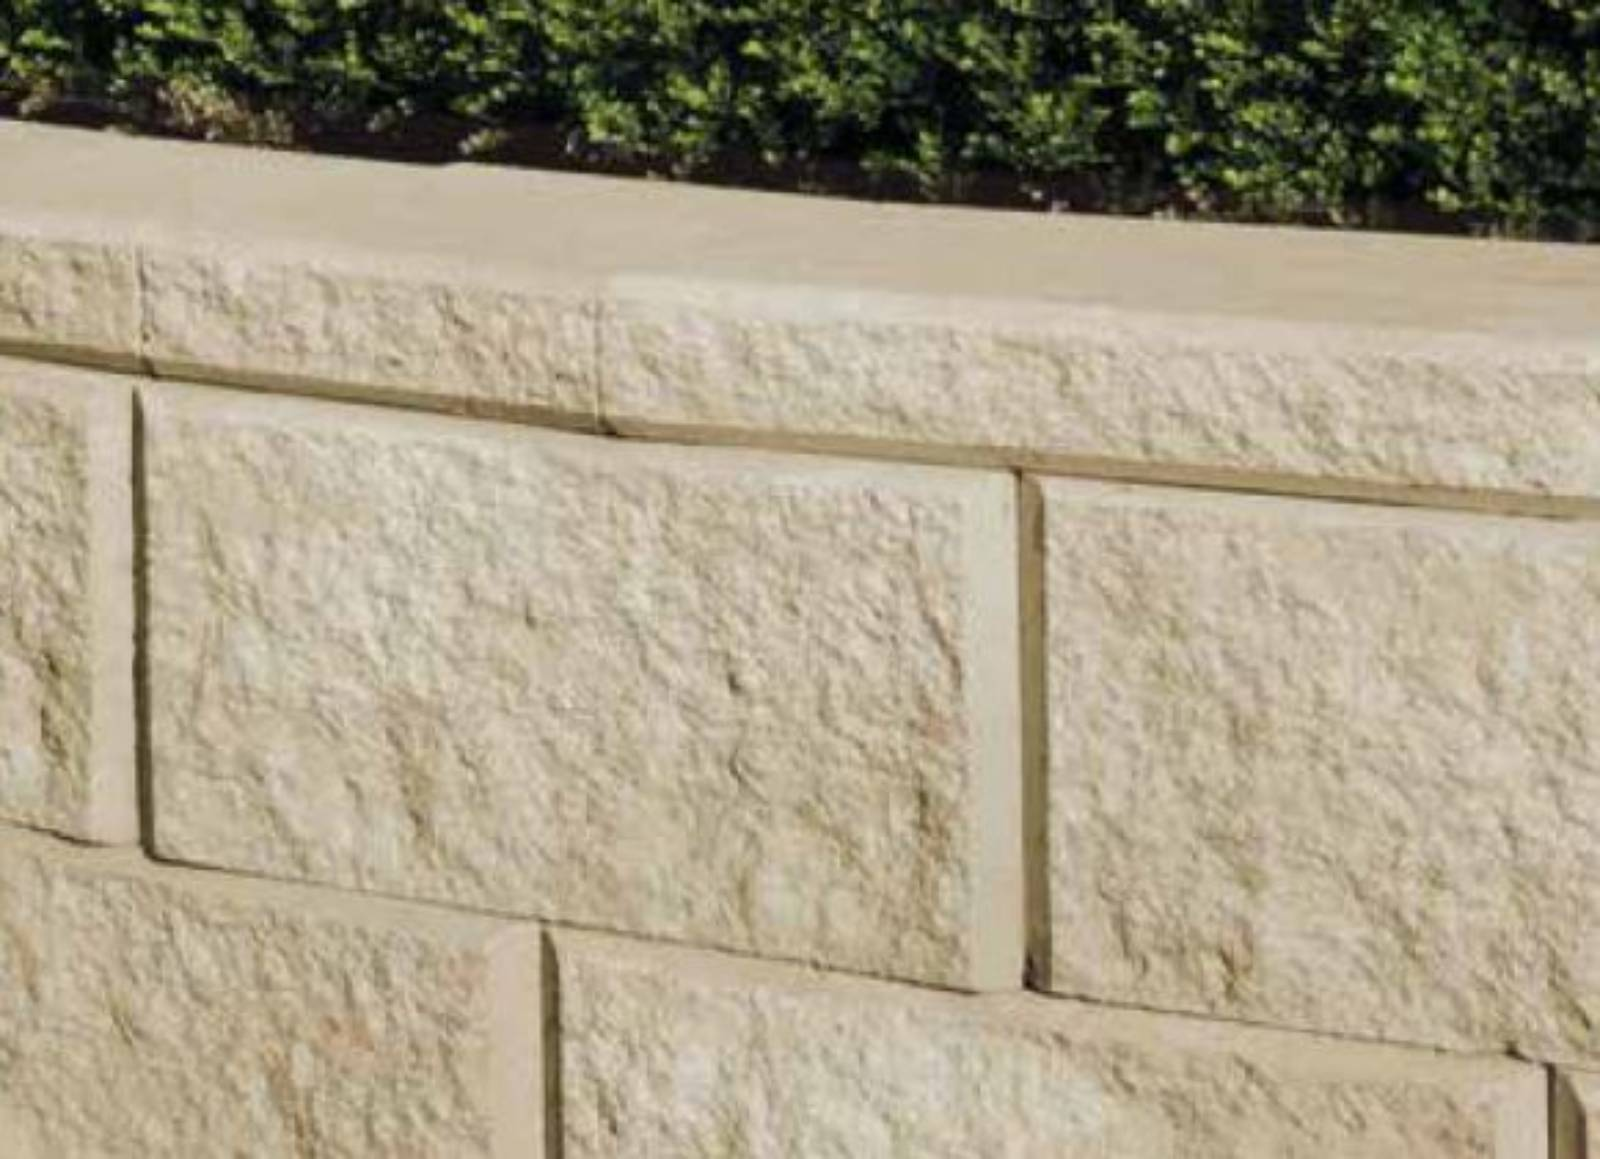 Painting an existing block retaining wall?